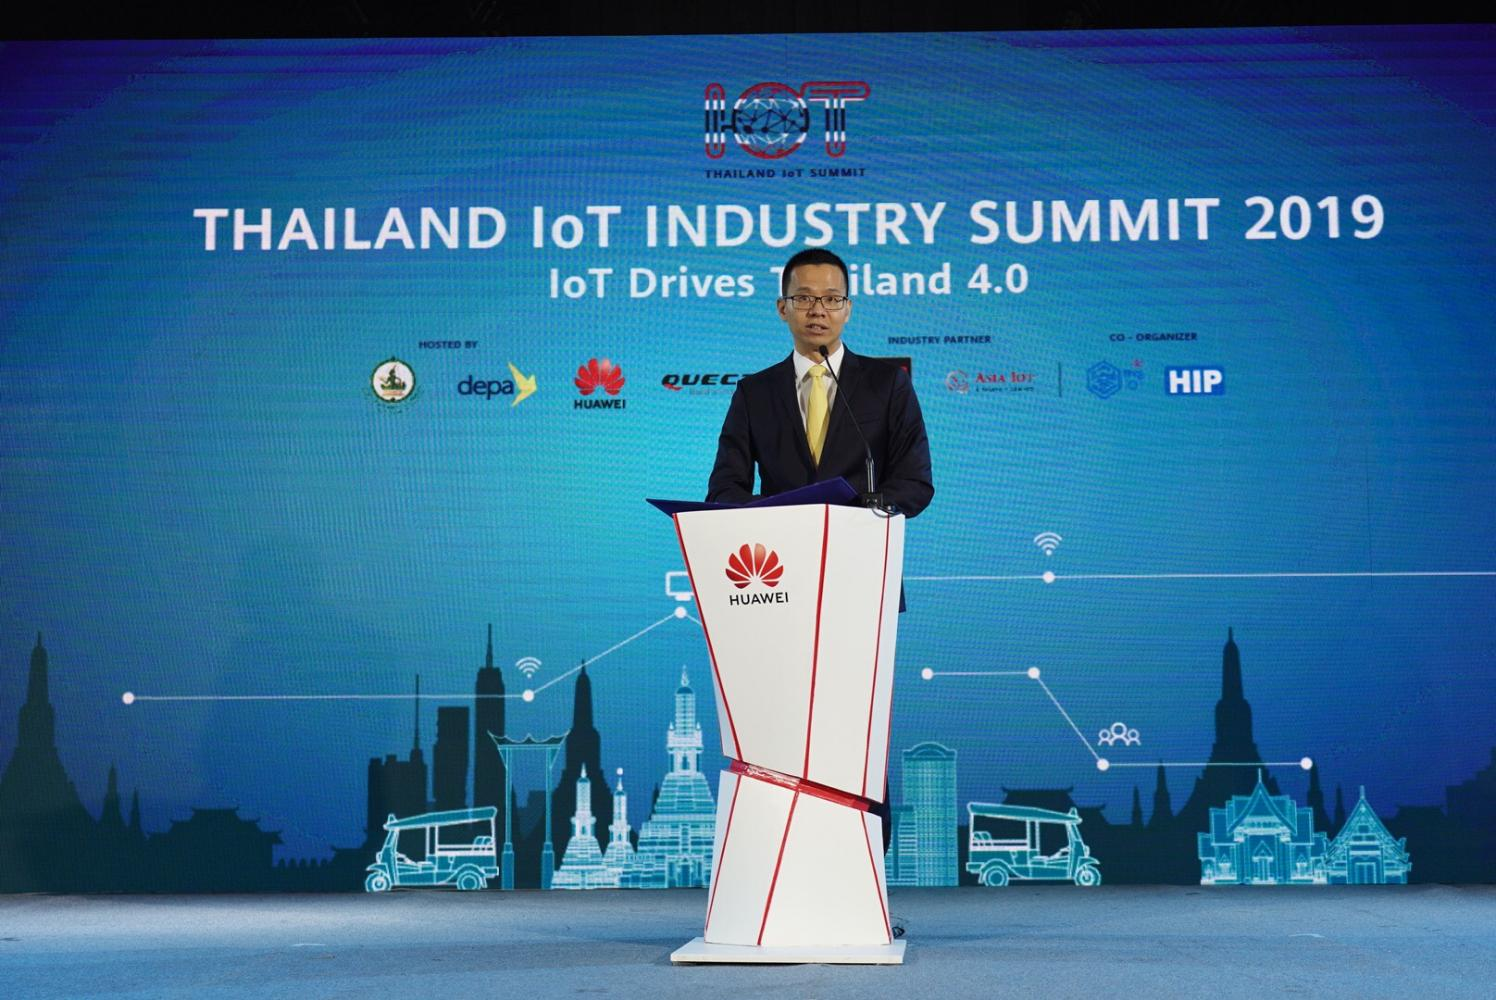 Promising start for Thai IoT adoption